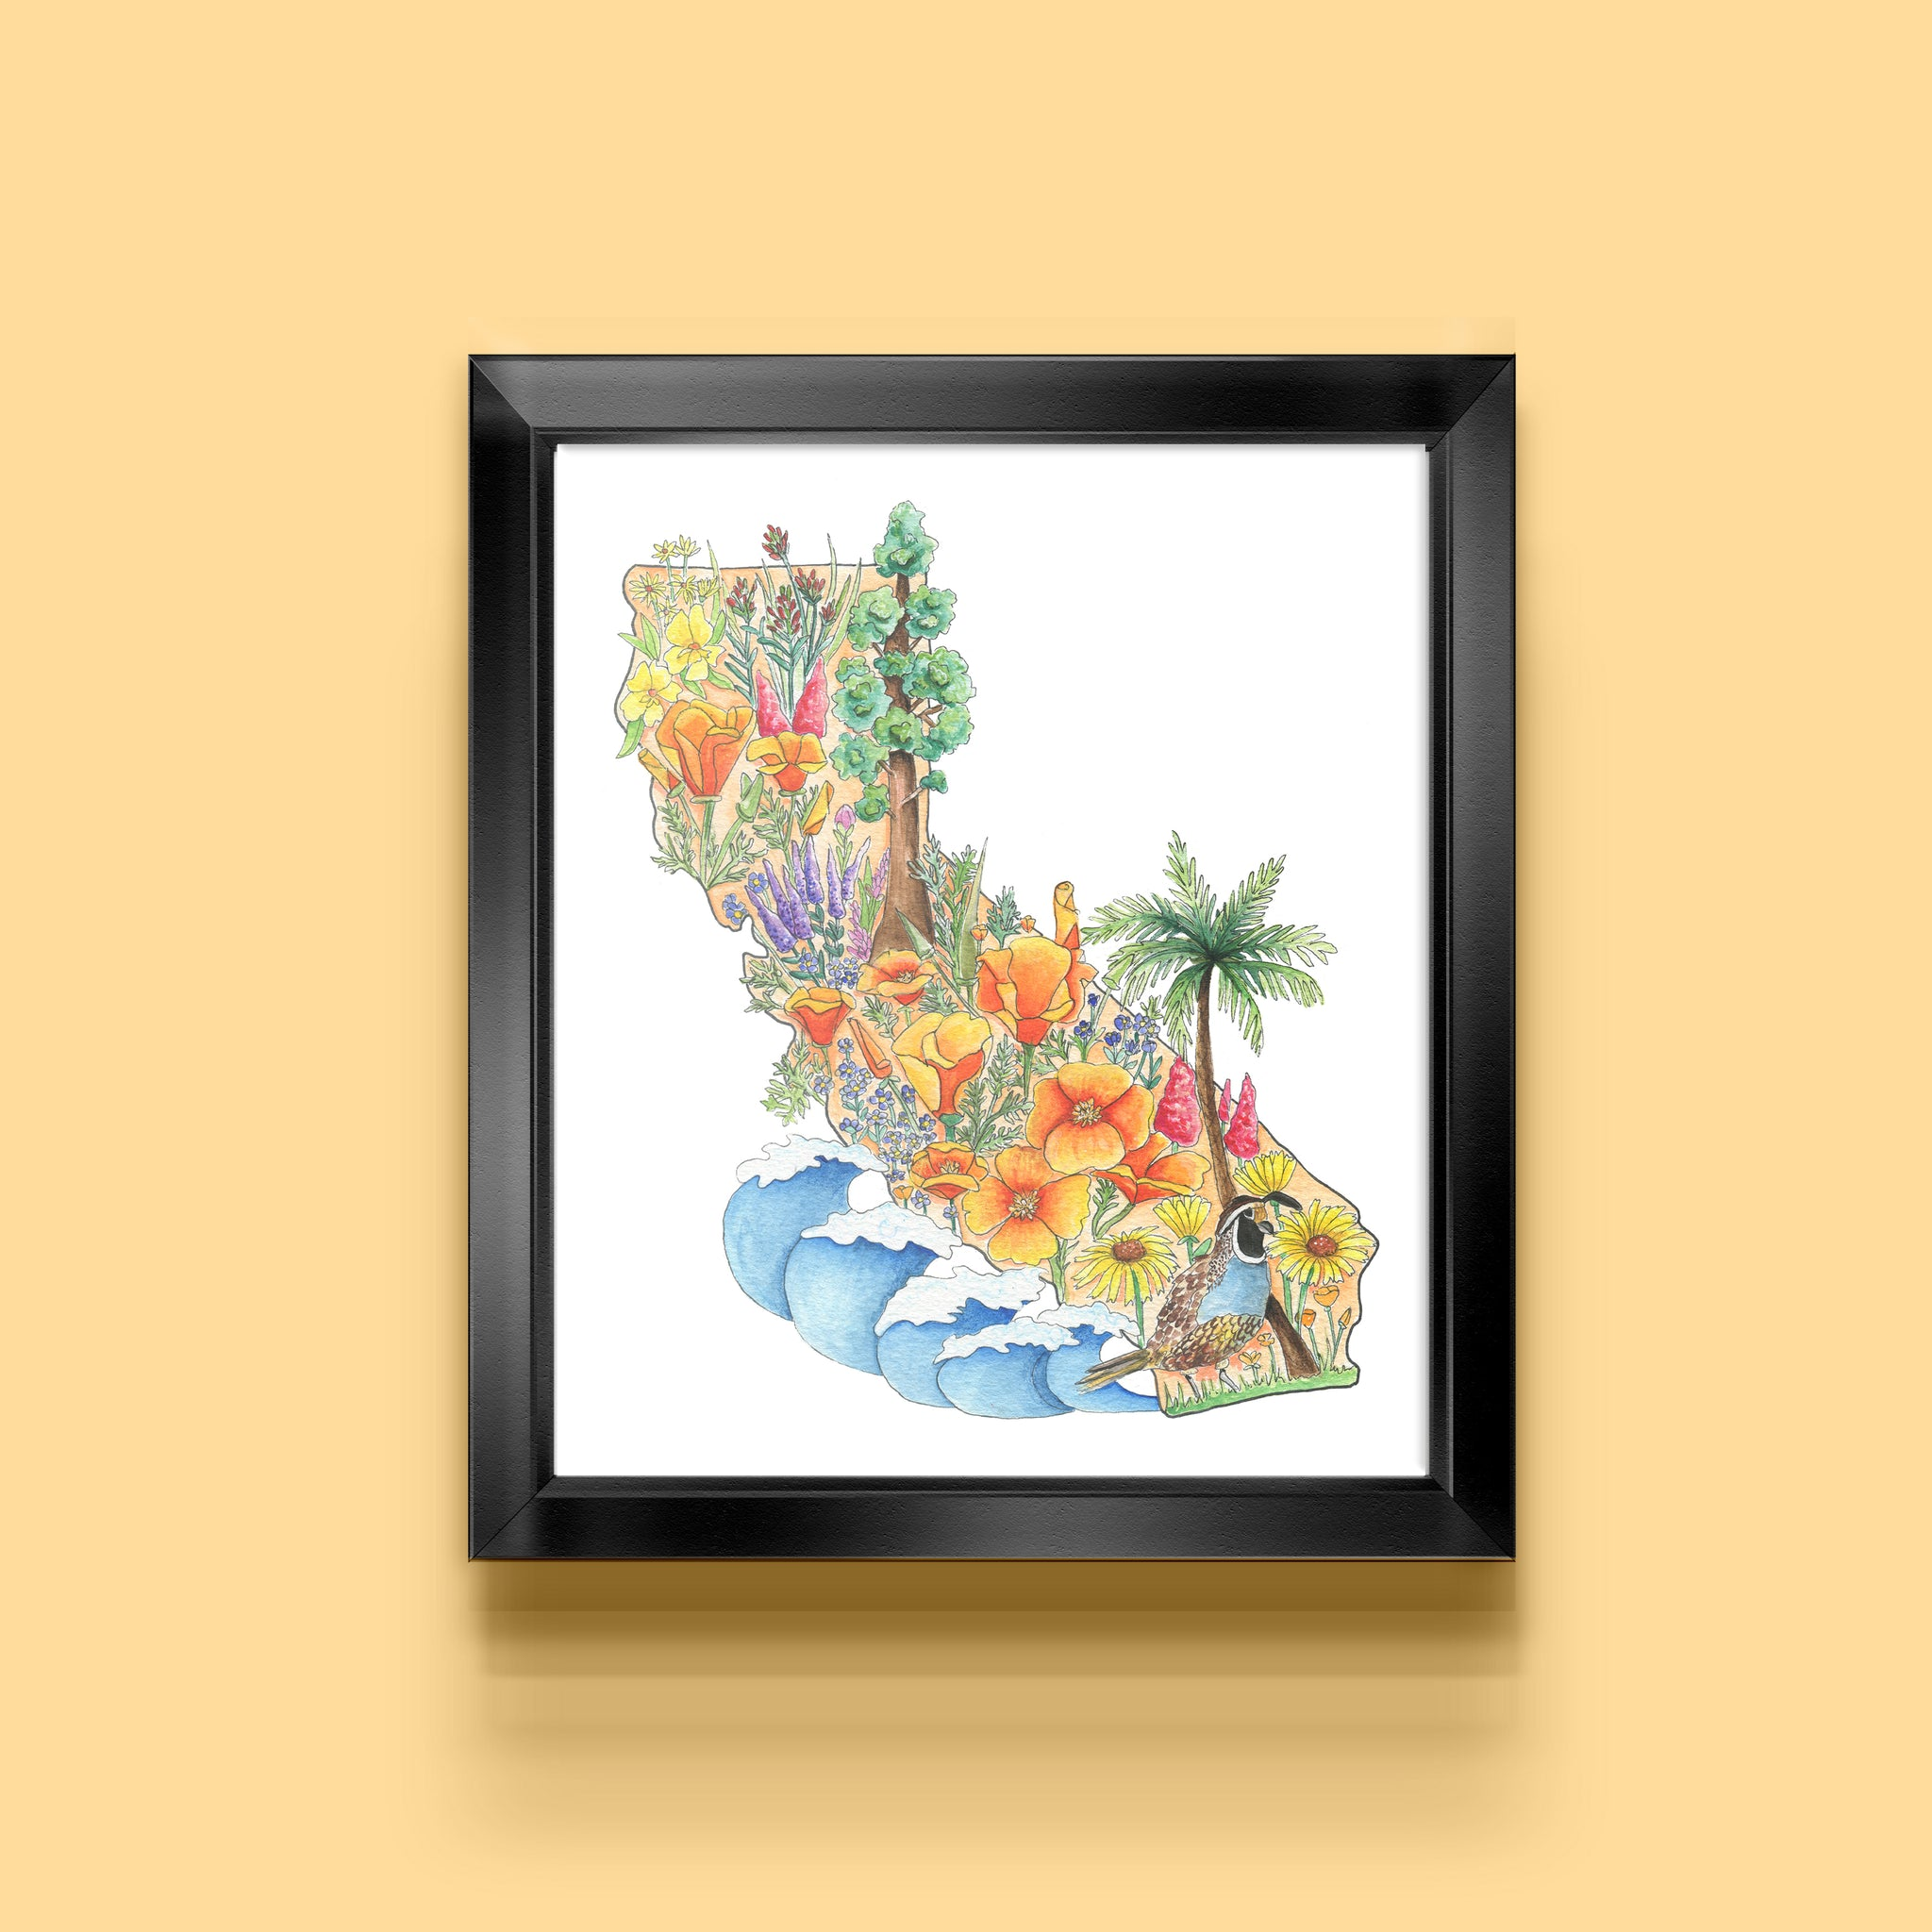 Floral State of California Art Print - June Poppies Designs